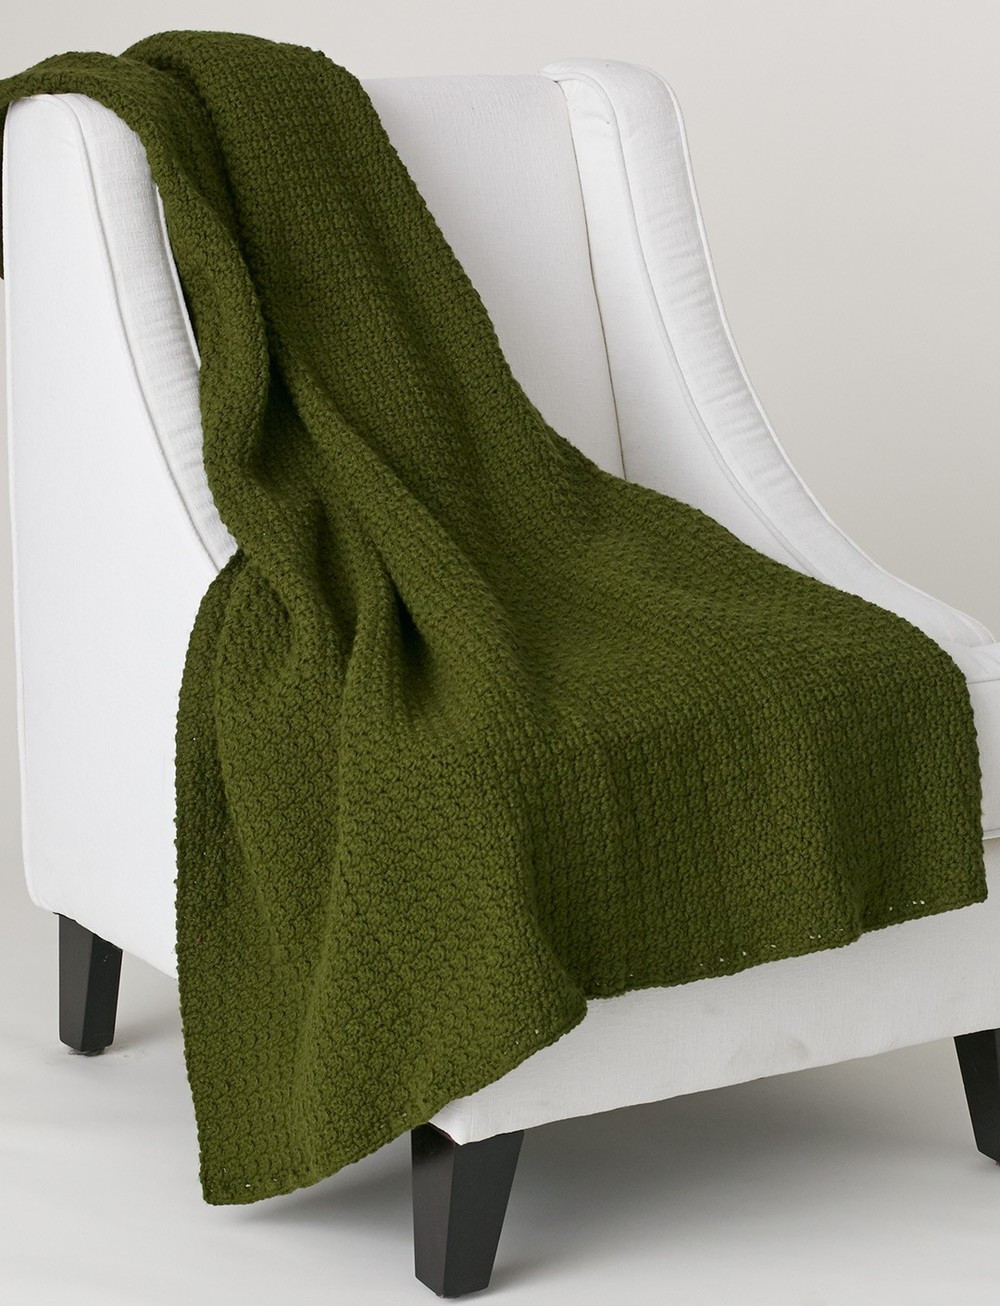 Evergreen Crochet Throw